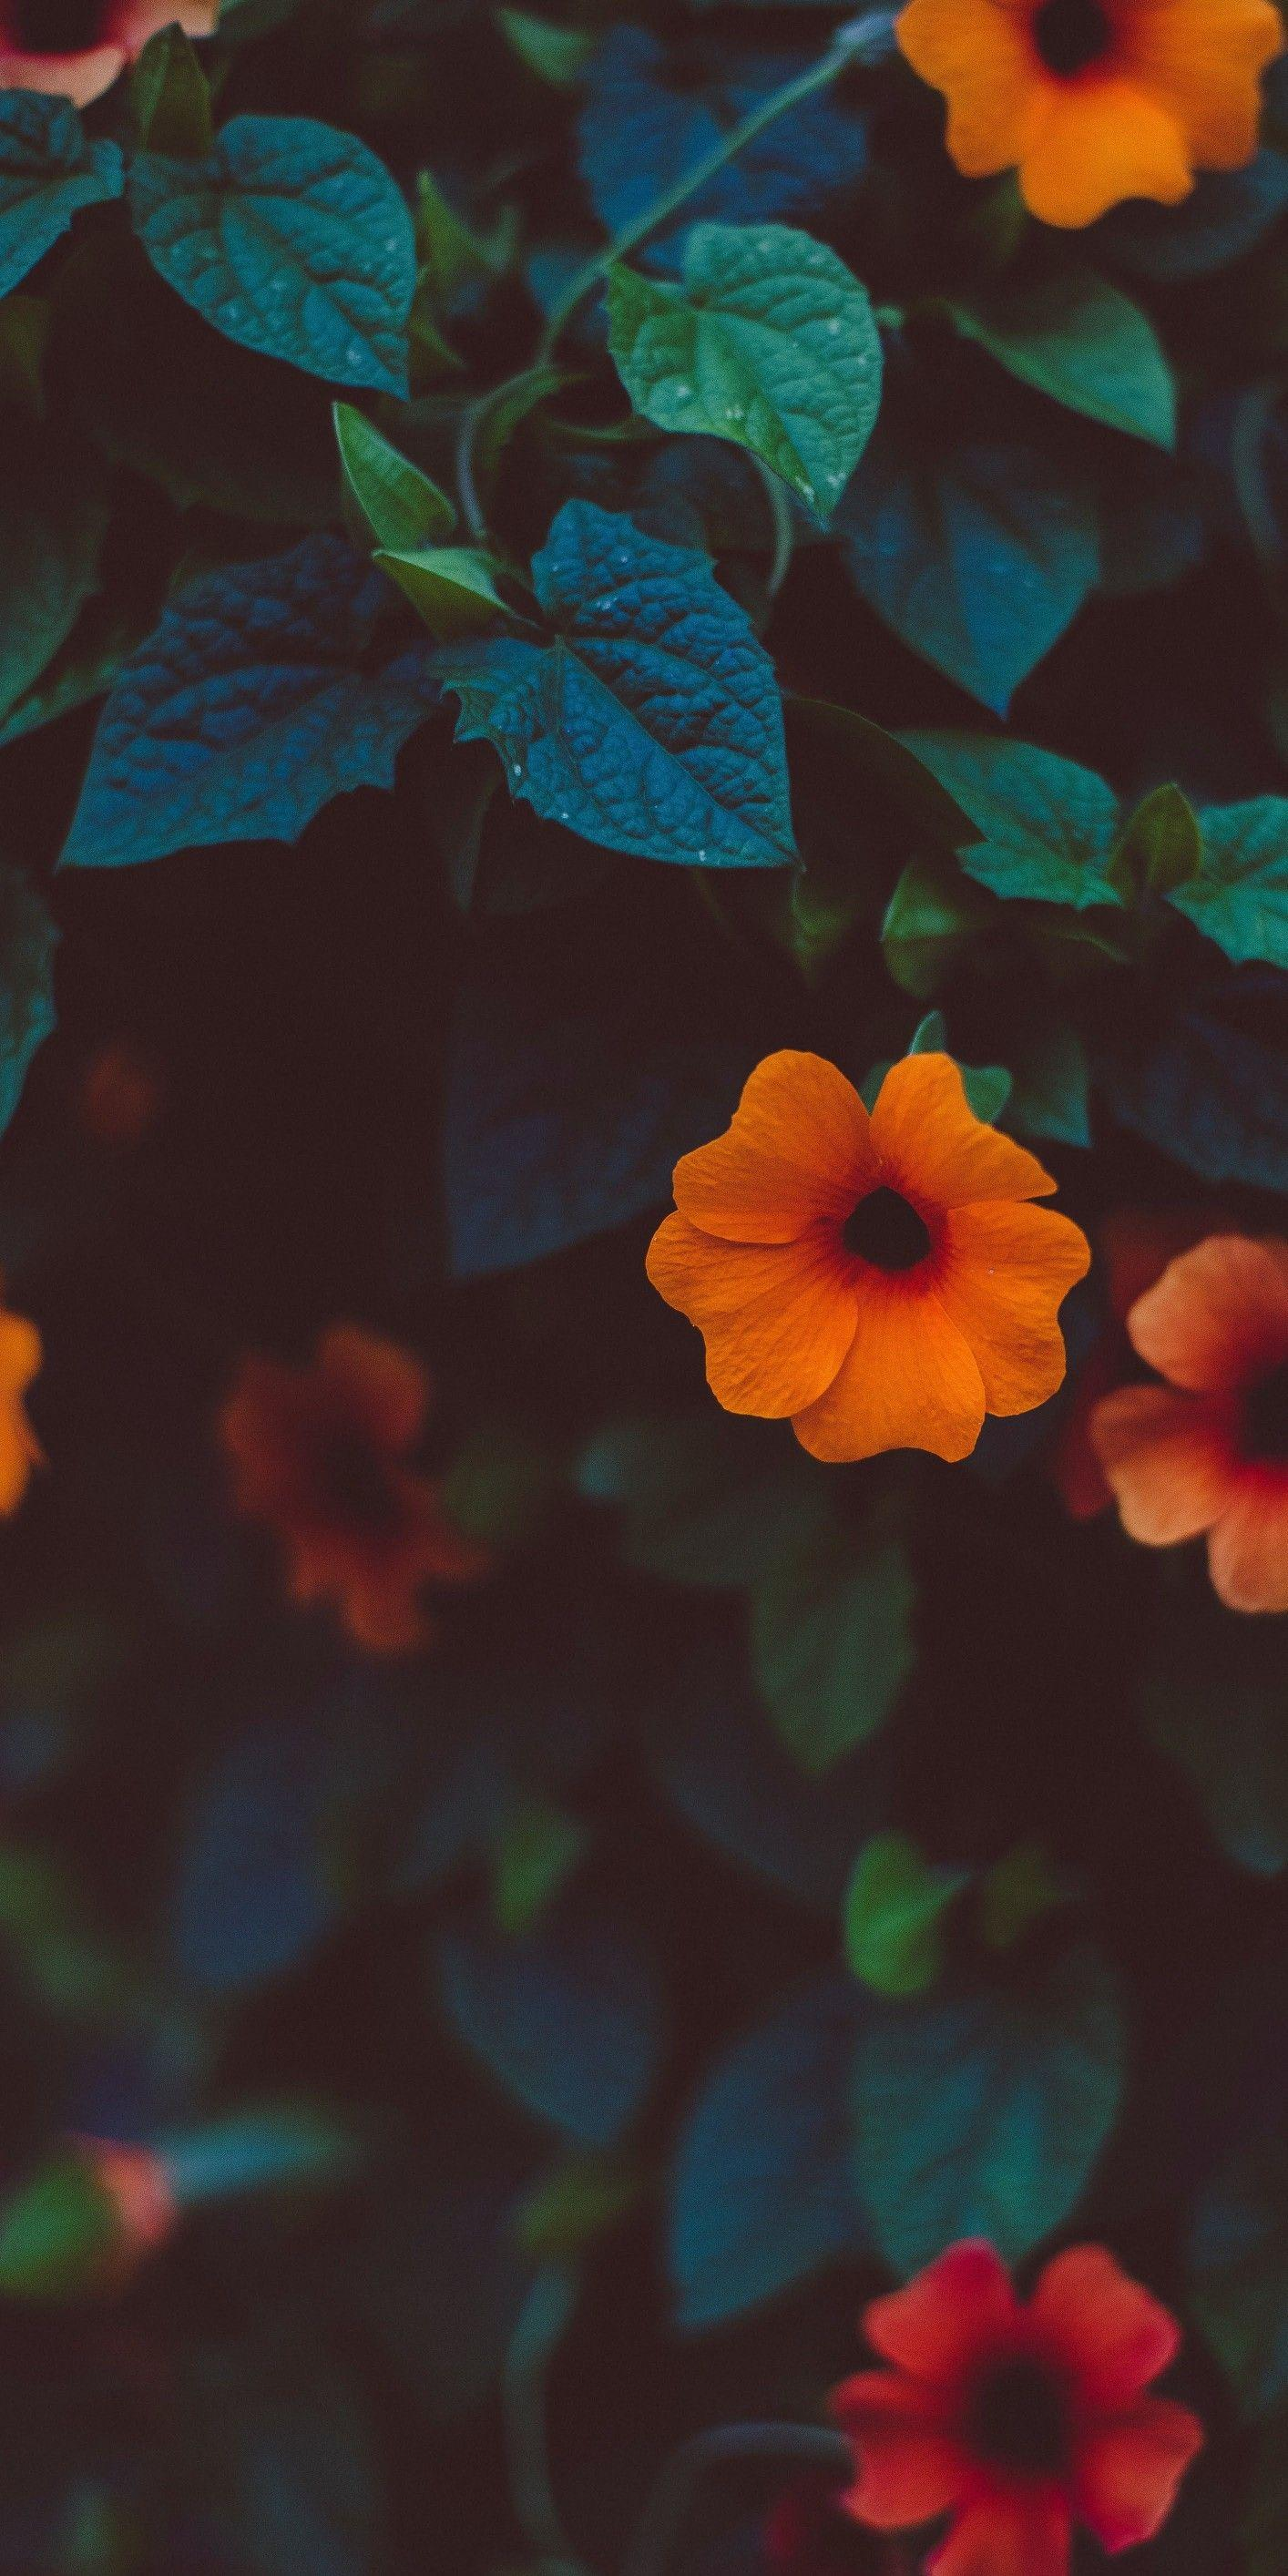 Aesthetic Green Floral Hd Wallpapers Wallpaper Cave If you're looking for the best aesthetic wallpapers then wallpapertag is the place to be. aesthetic green floral hd wallpapers